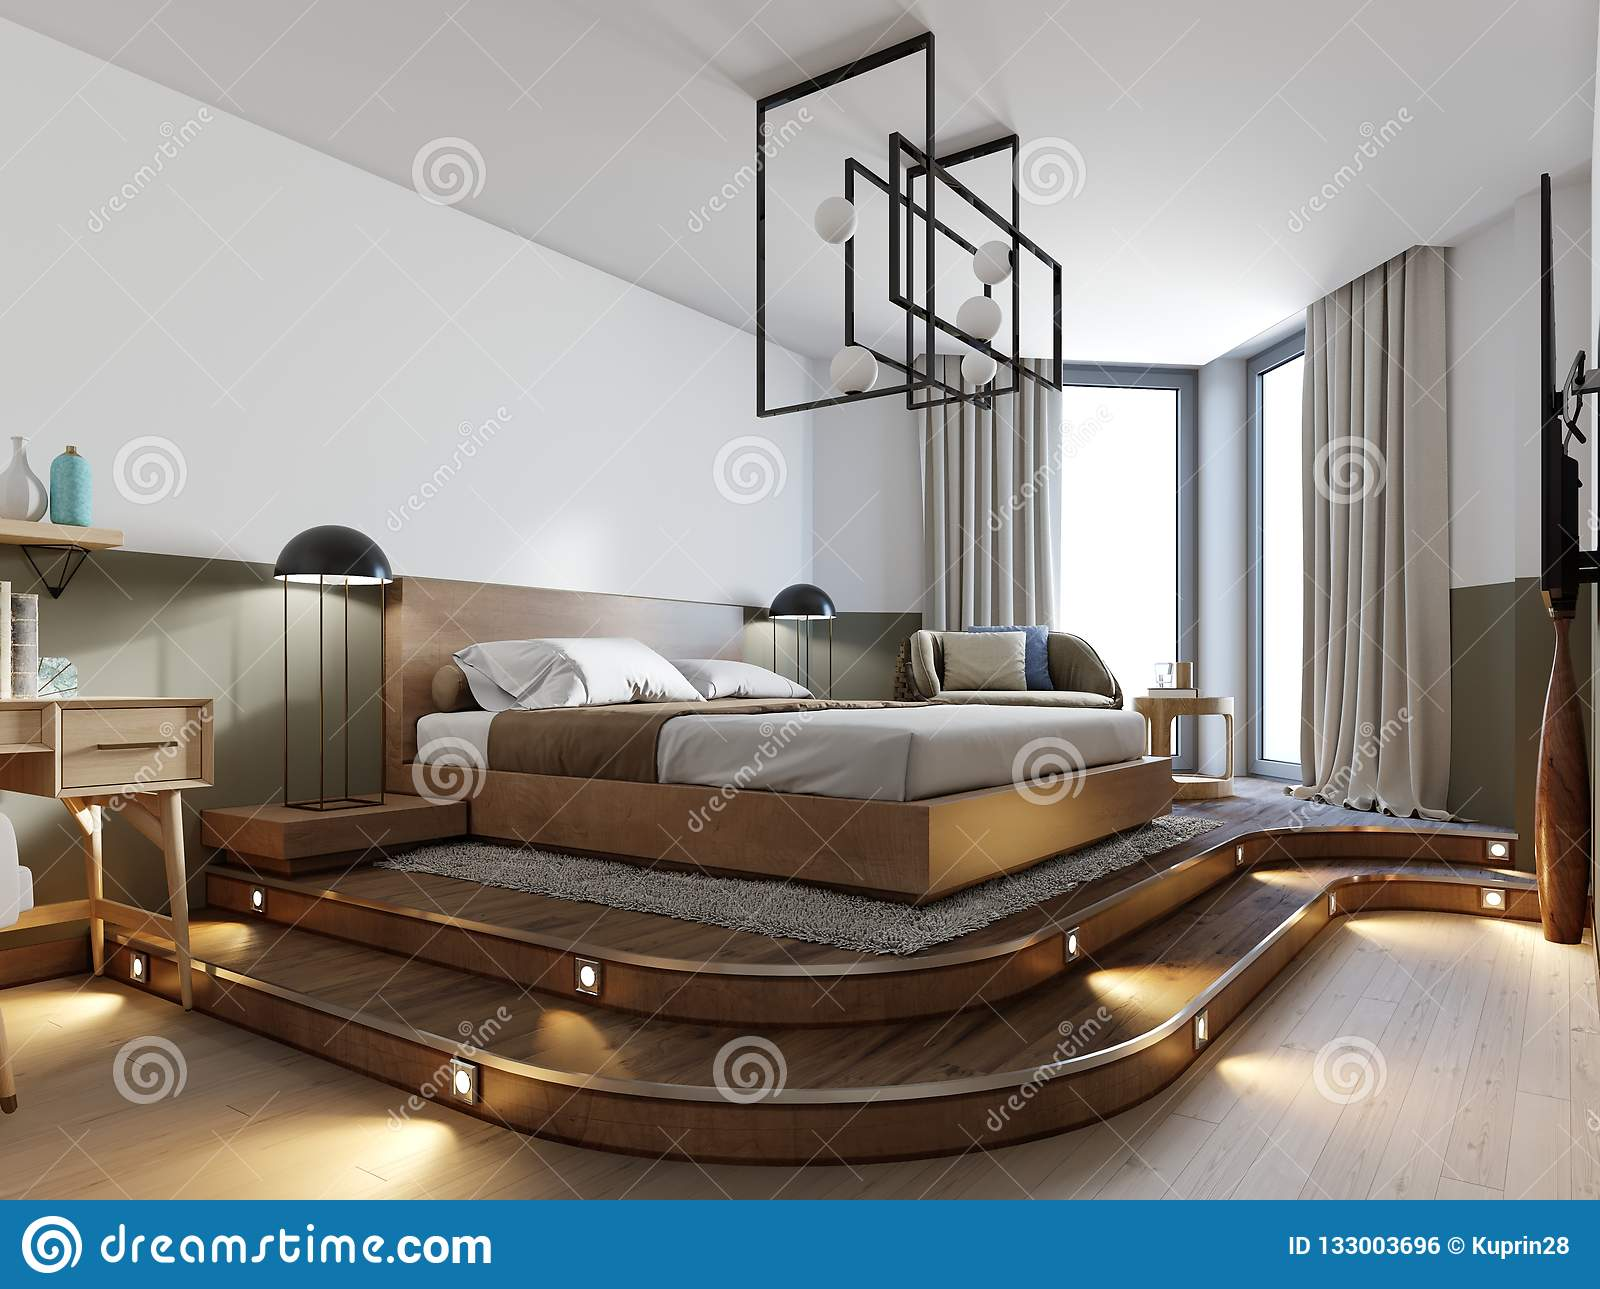 Modern Rustic Bedroom Design And A Bed On A Wooden Podium With